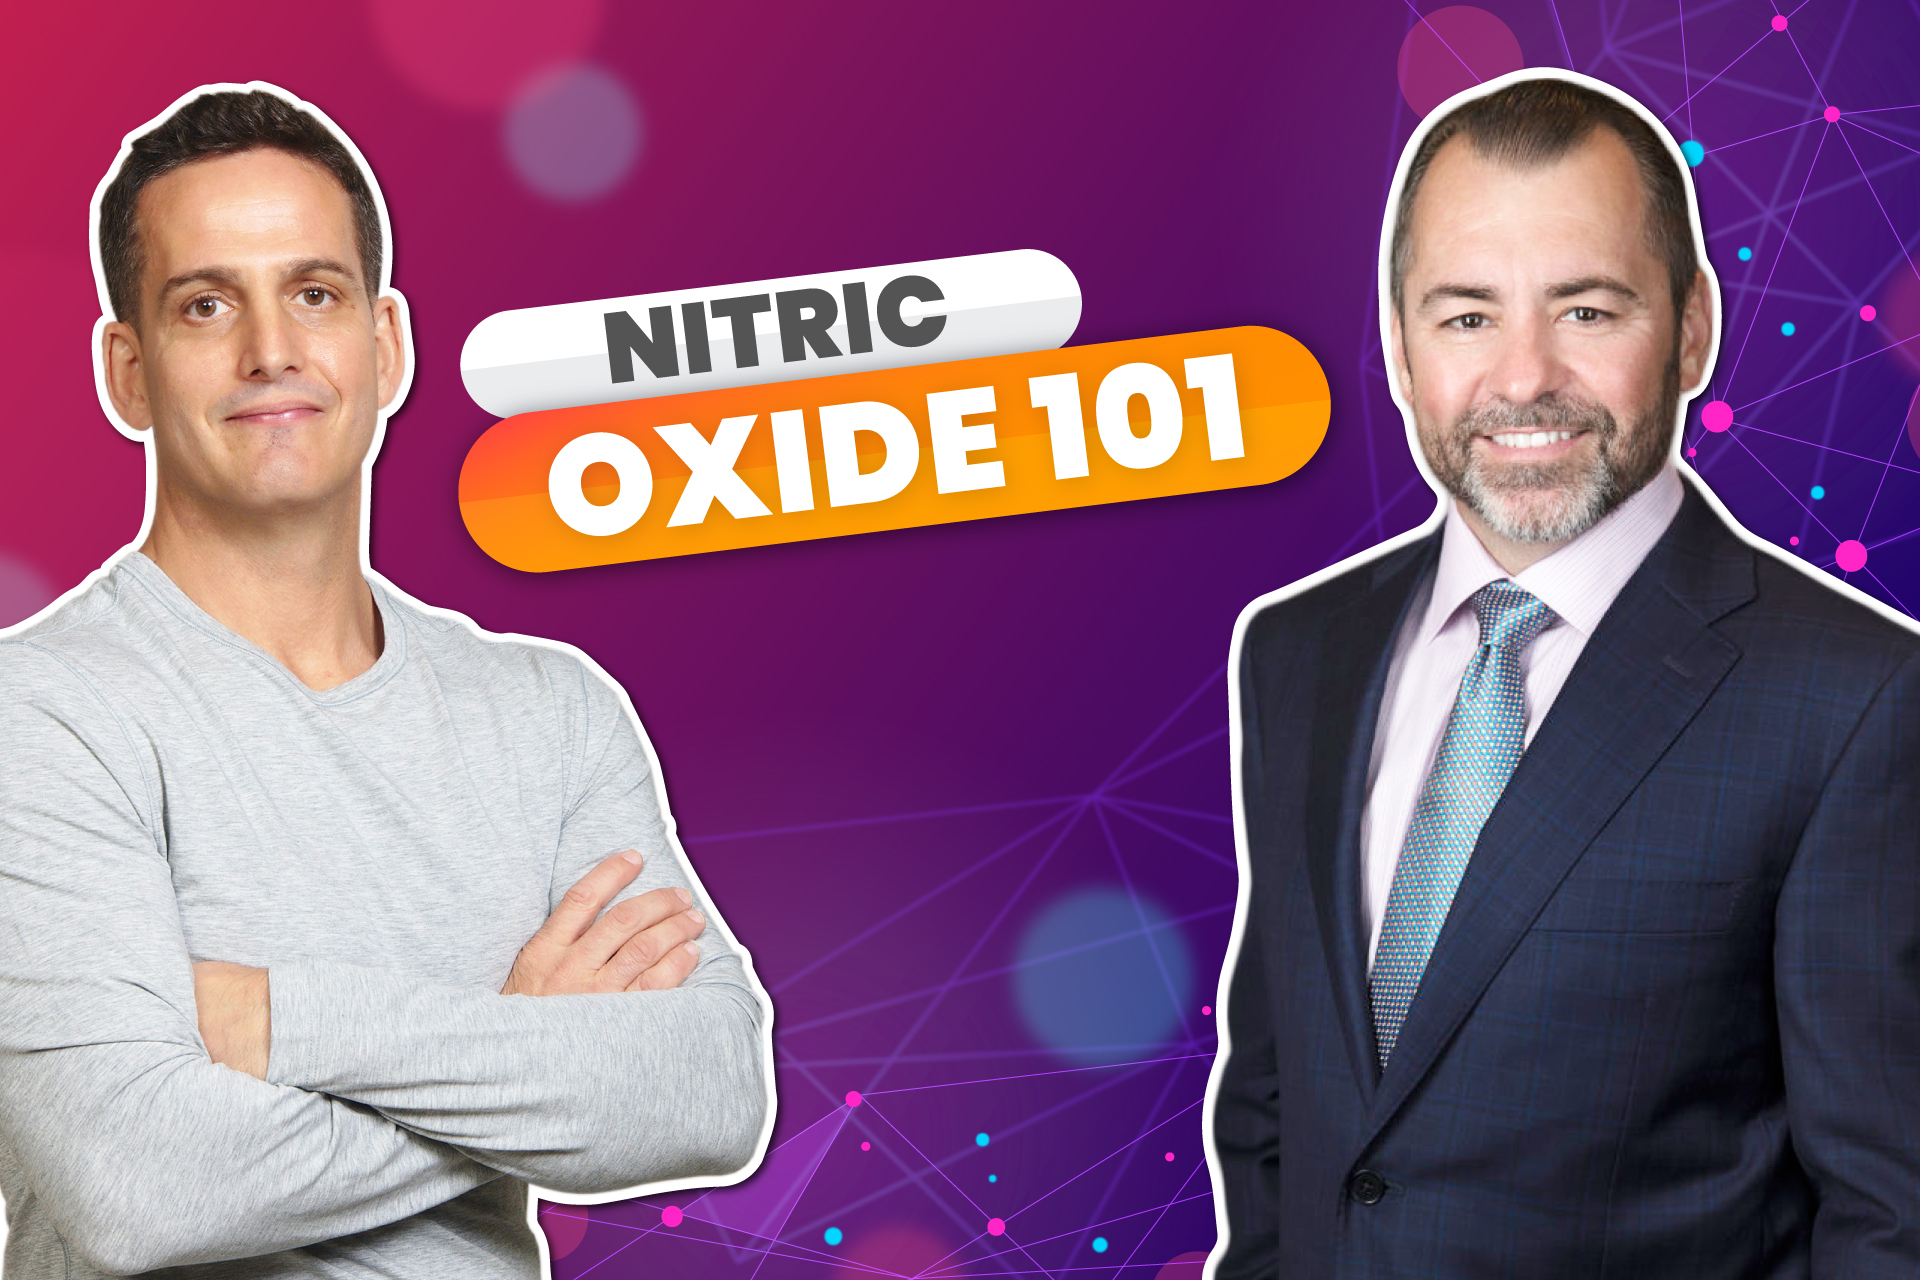 Learn How To boost Nitric Oxide In the Body Naturally